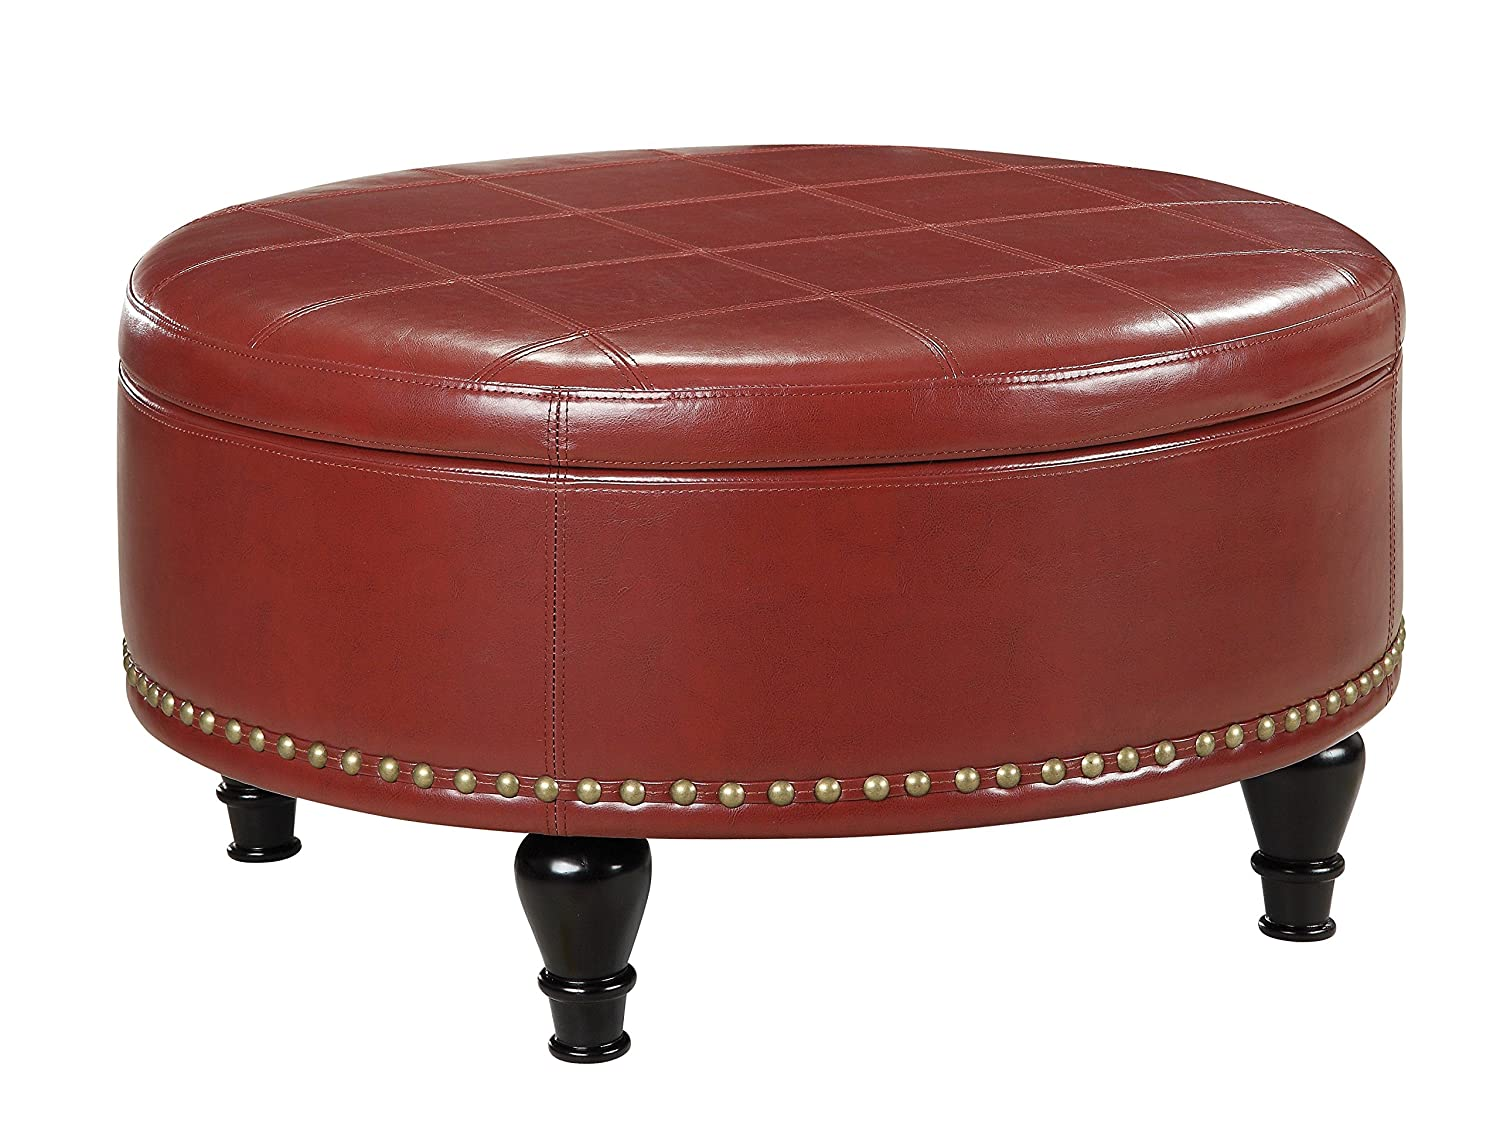 amazoncom office star augusta eco leather round storage ottoman with brass color nail head trim and deep espresso legs crimson red kitchen u0026 dining